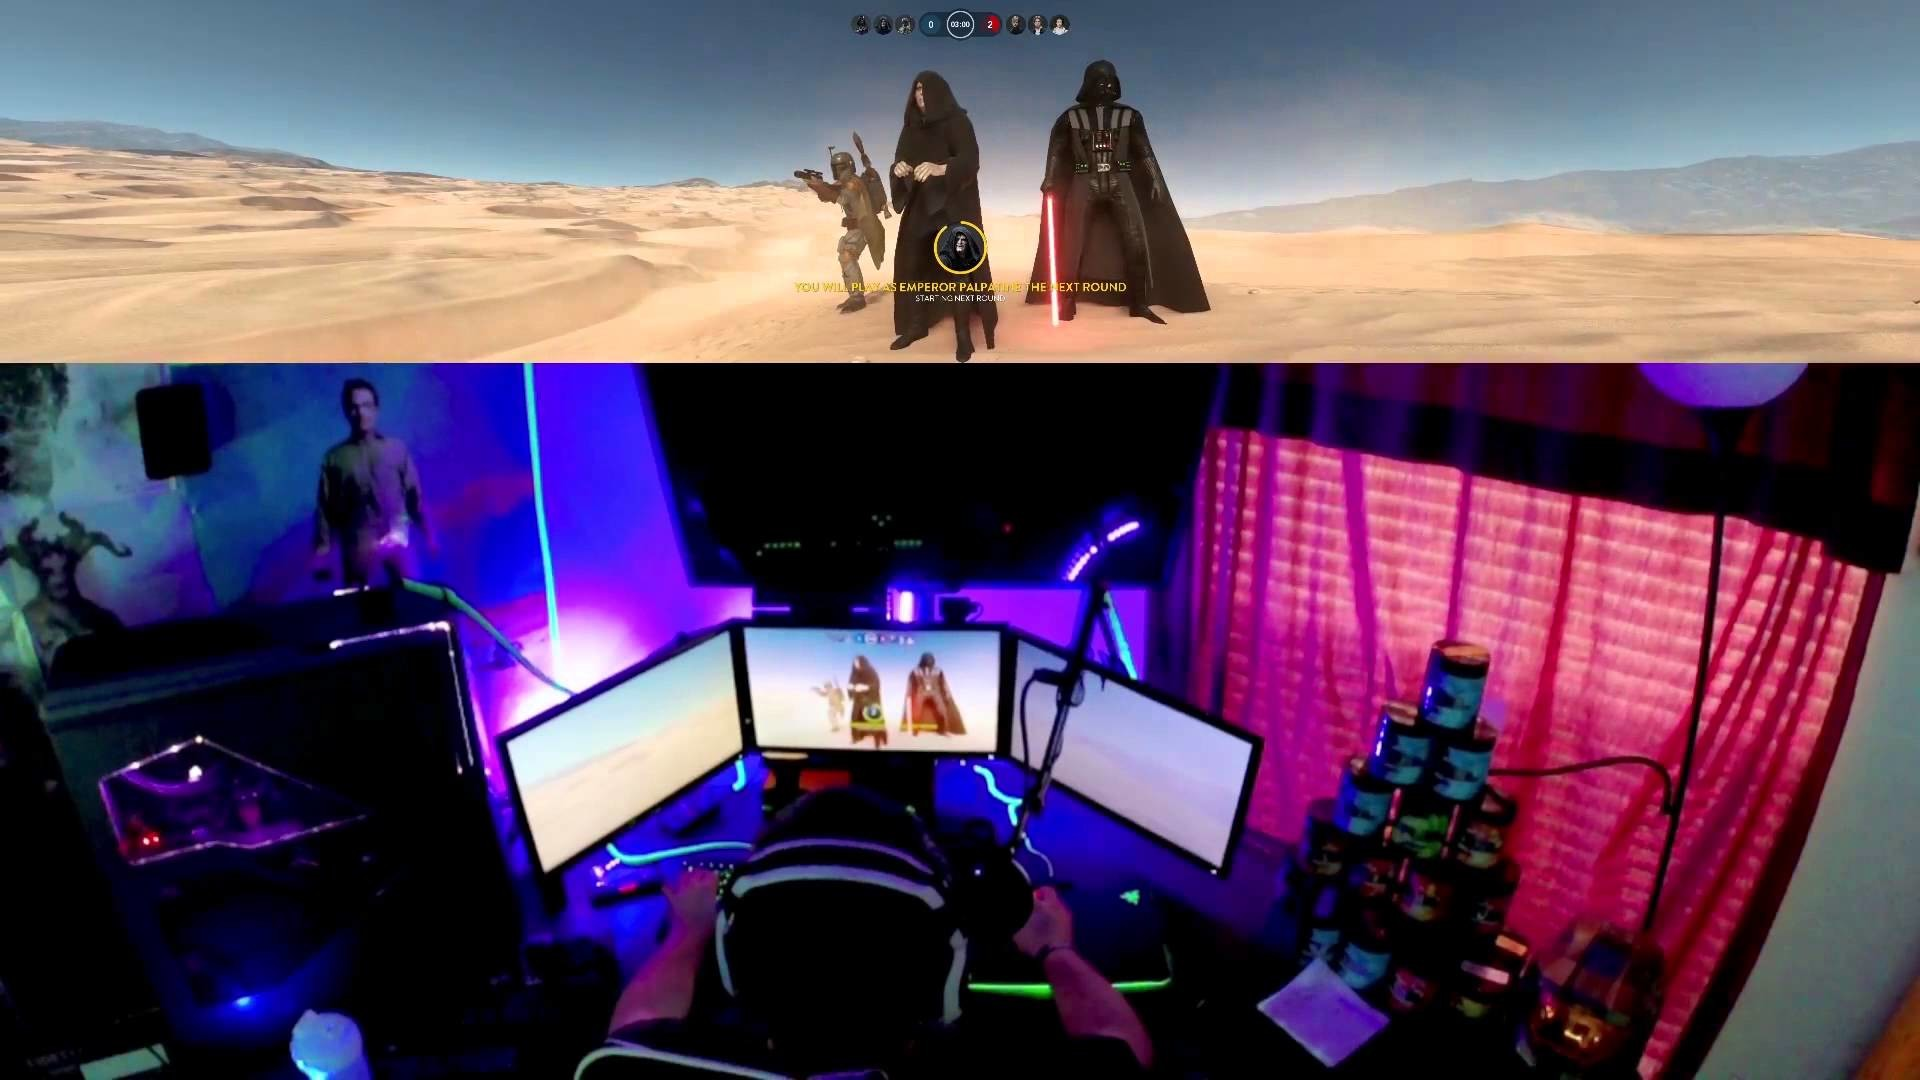 STAR WARS: BATTLEFRONT at 5760 x 1080! ULTRA GRAPHICS SETTINGS! – YouTube